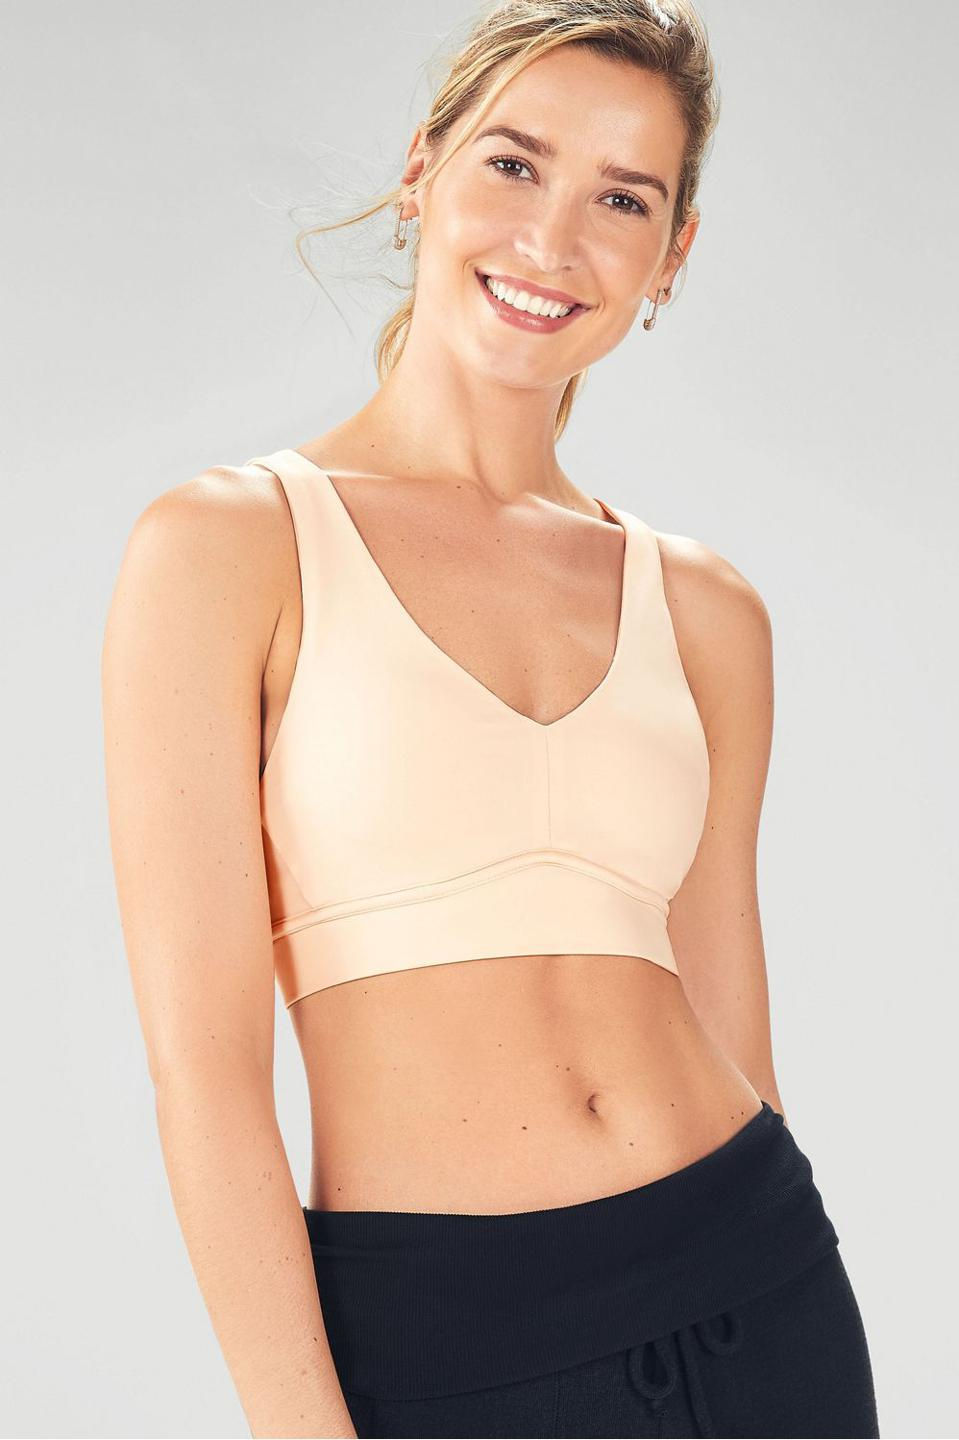 All Day Every Day Bra by Fabletics